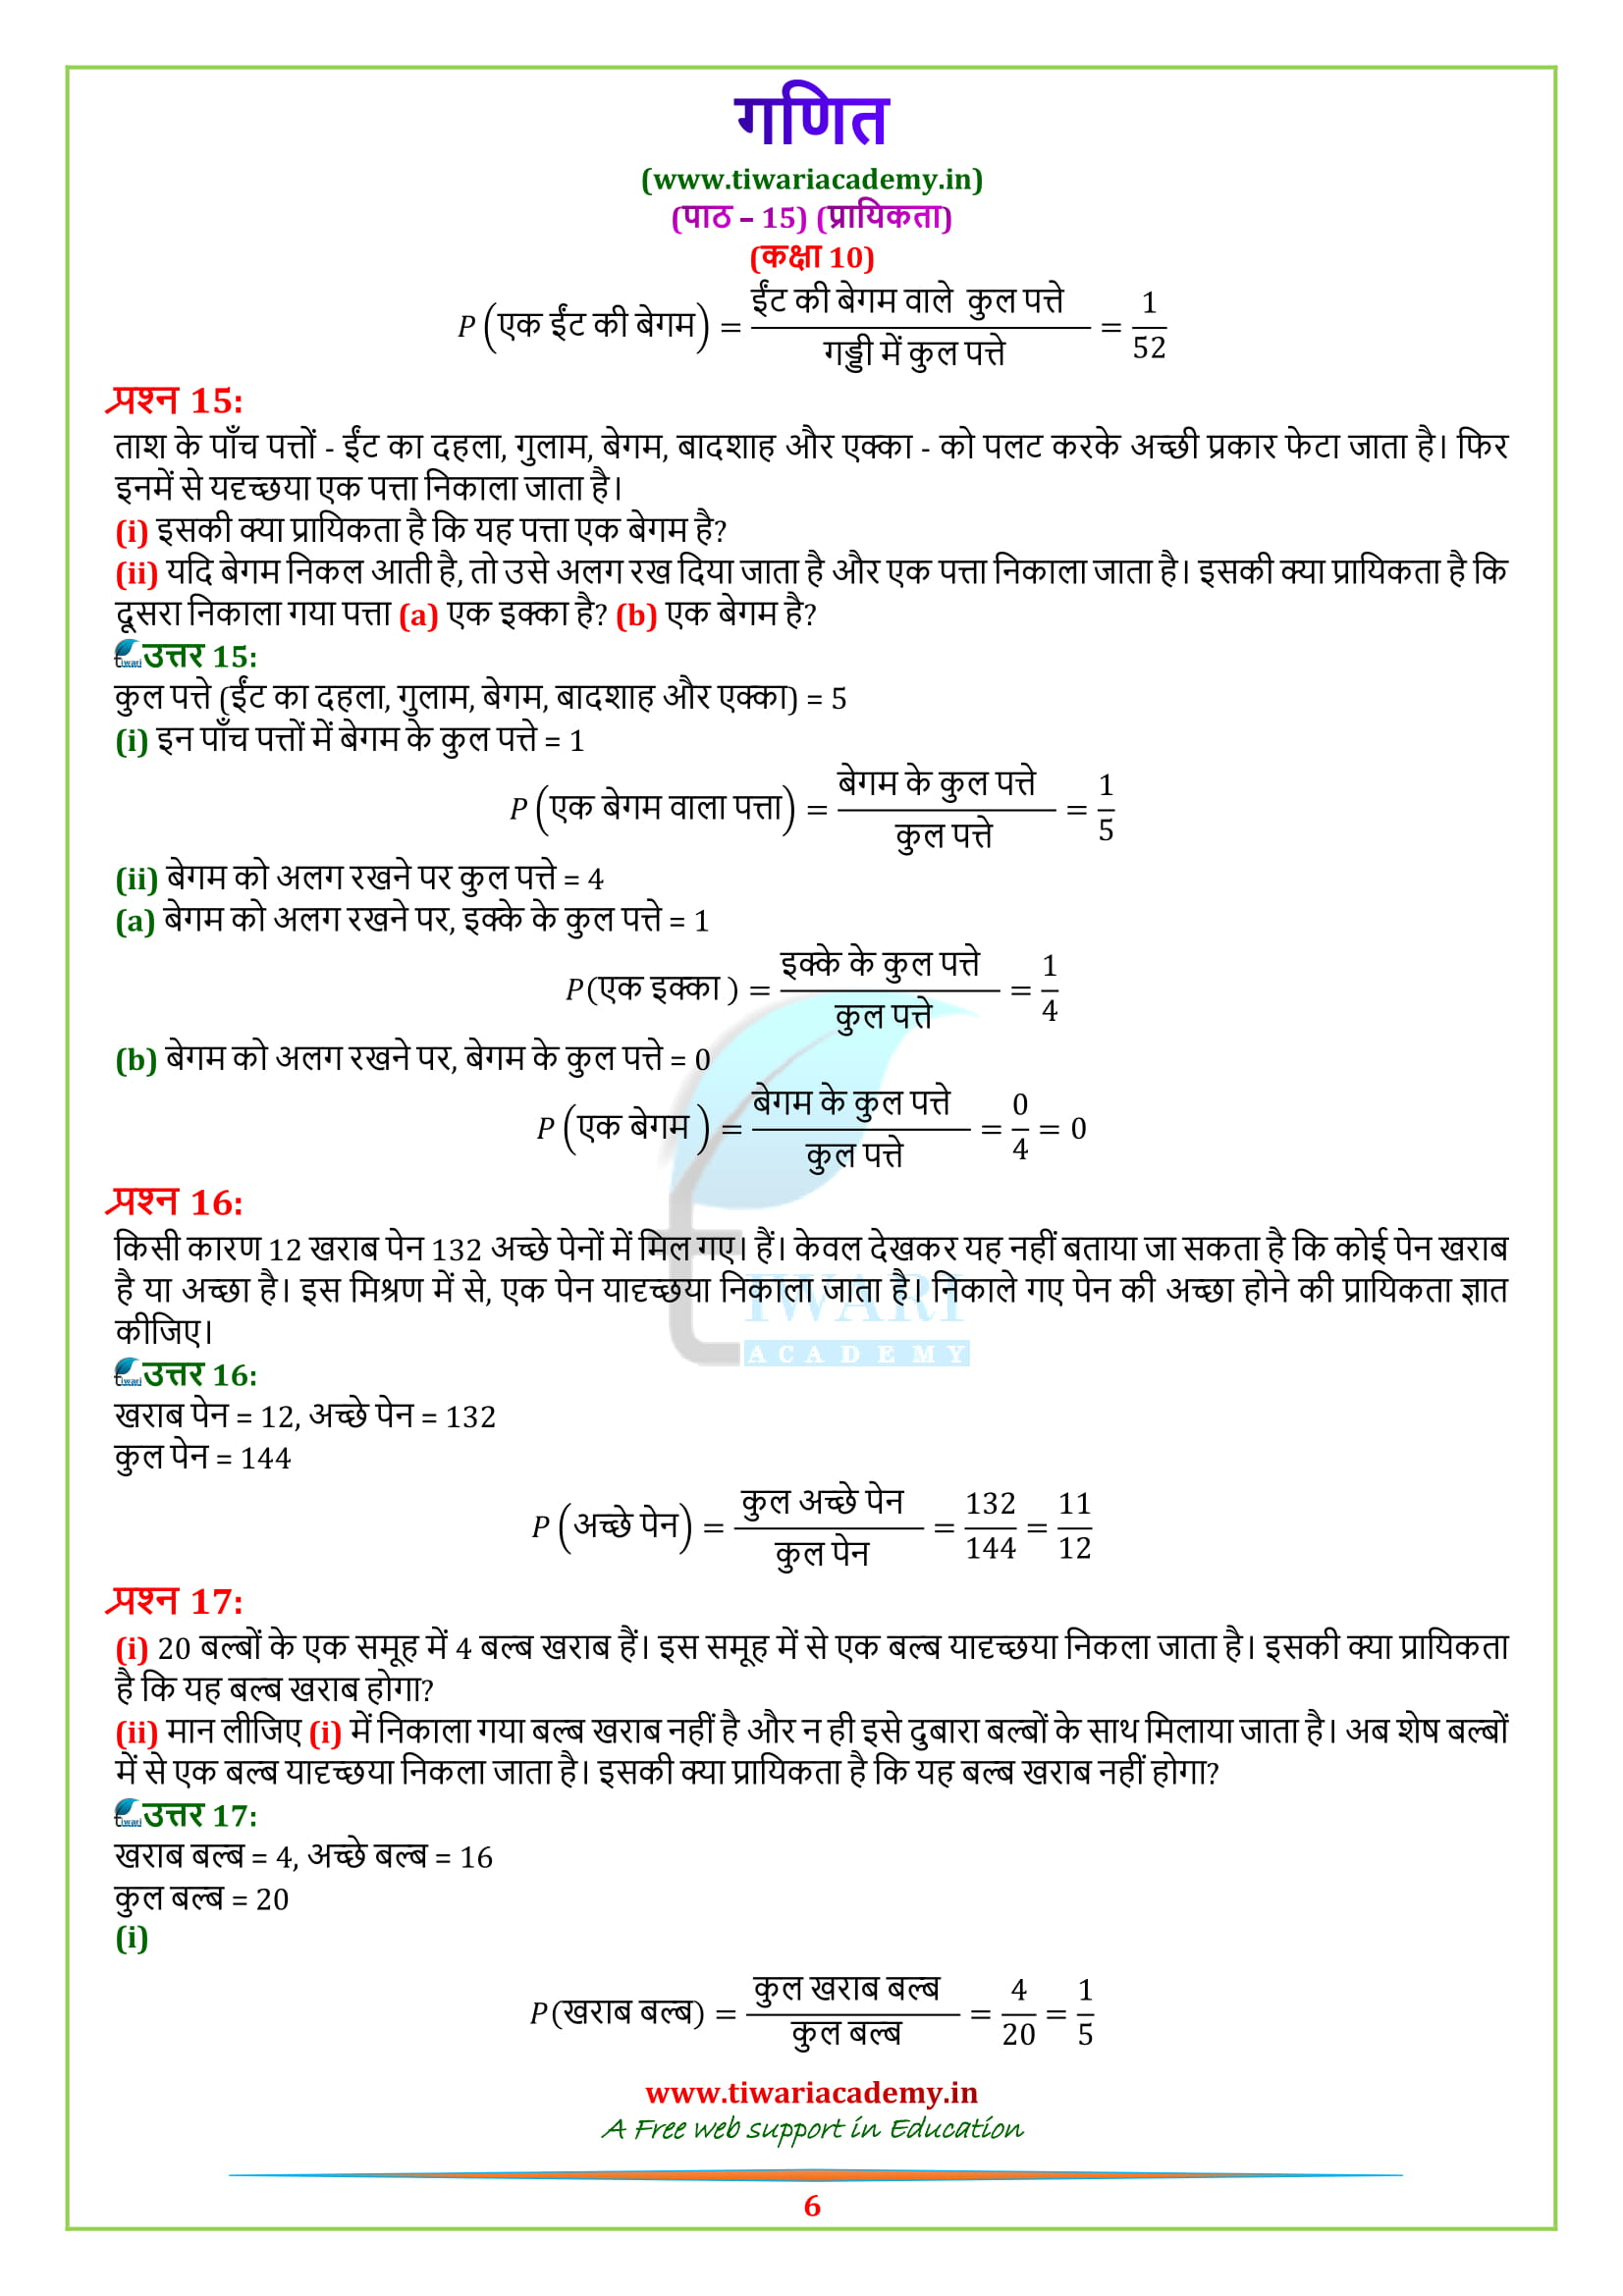 Class 10 Maths Exercise 15.1 solutions Tiwari academy